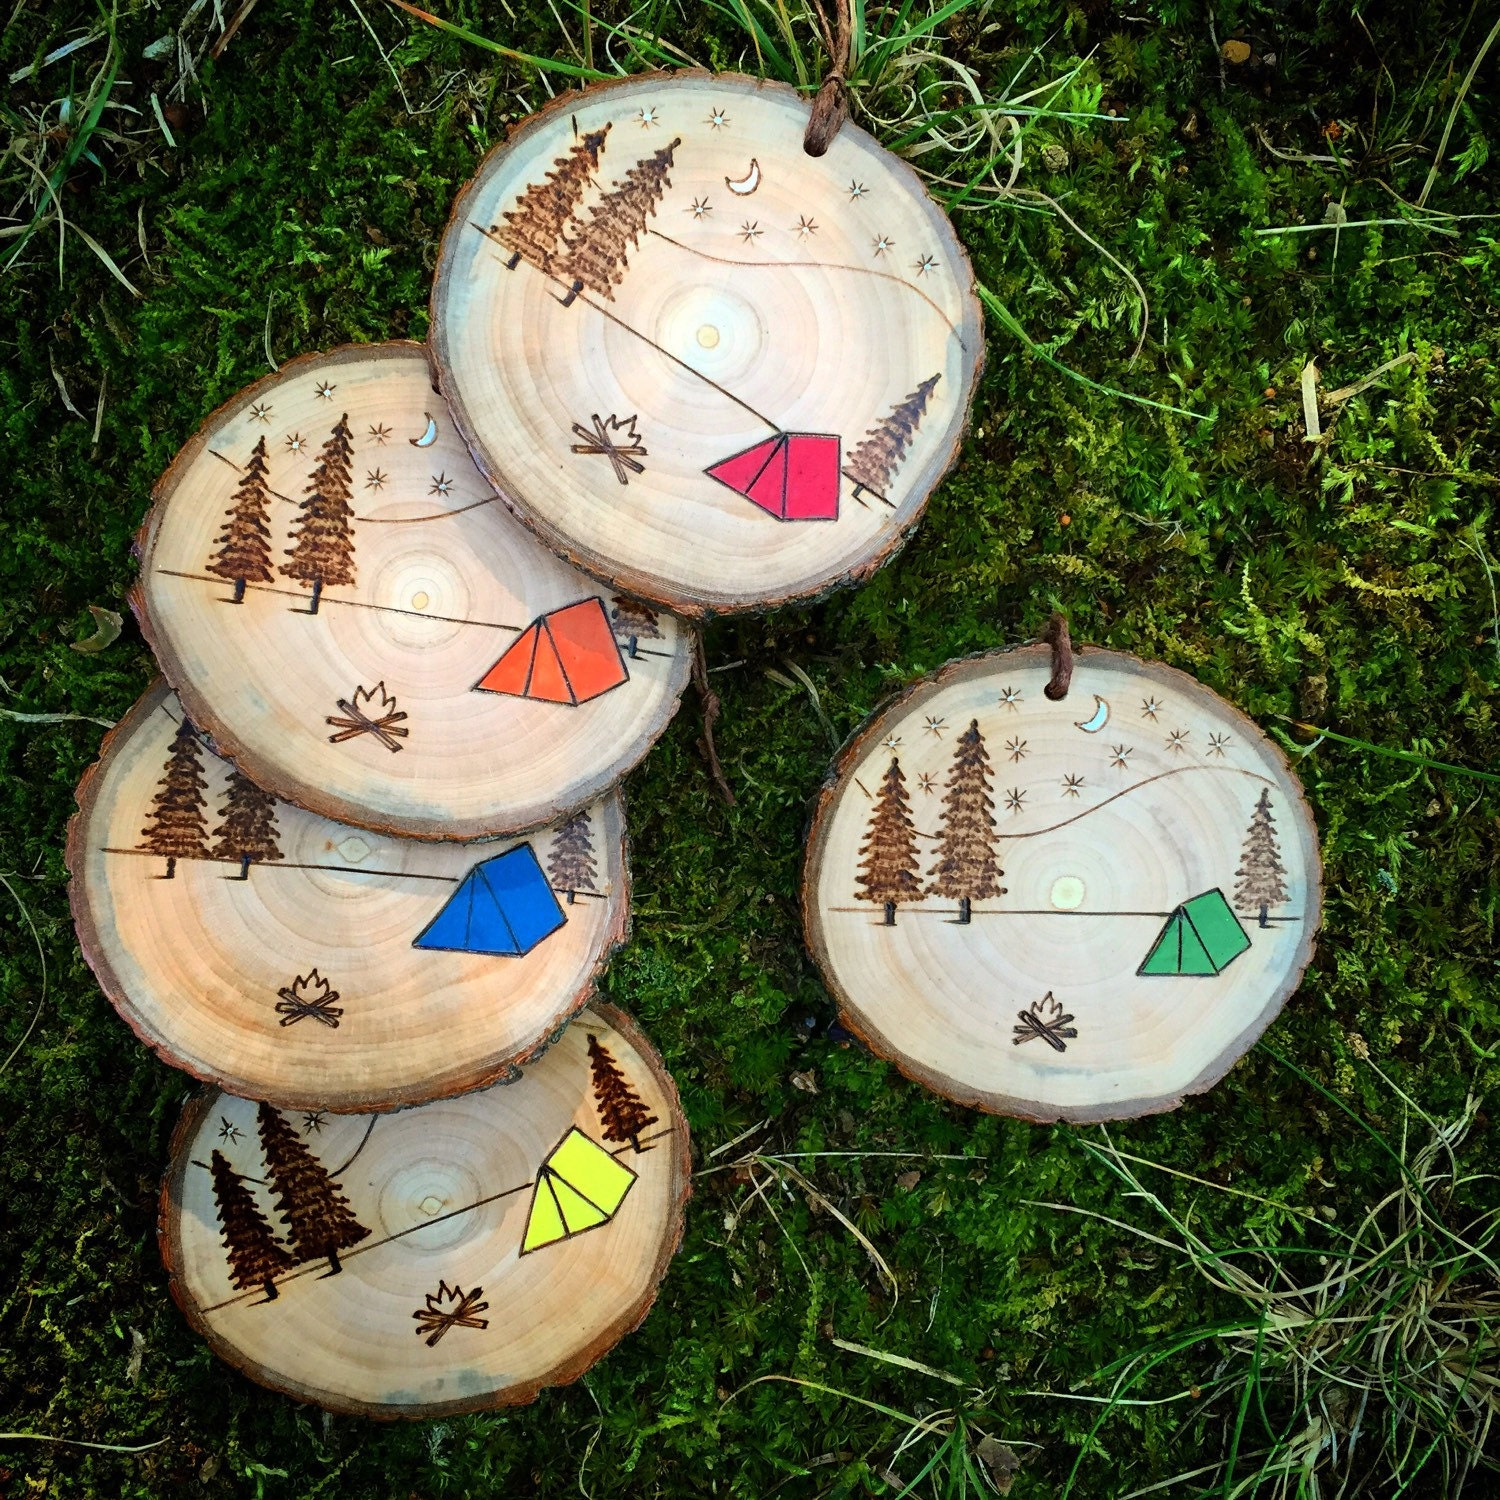 Camping christmas tree ornaments - Wood Burned Camping Scene Ornament Rustic Wooden Pine Campfire Tent Trees Mountains